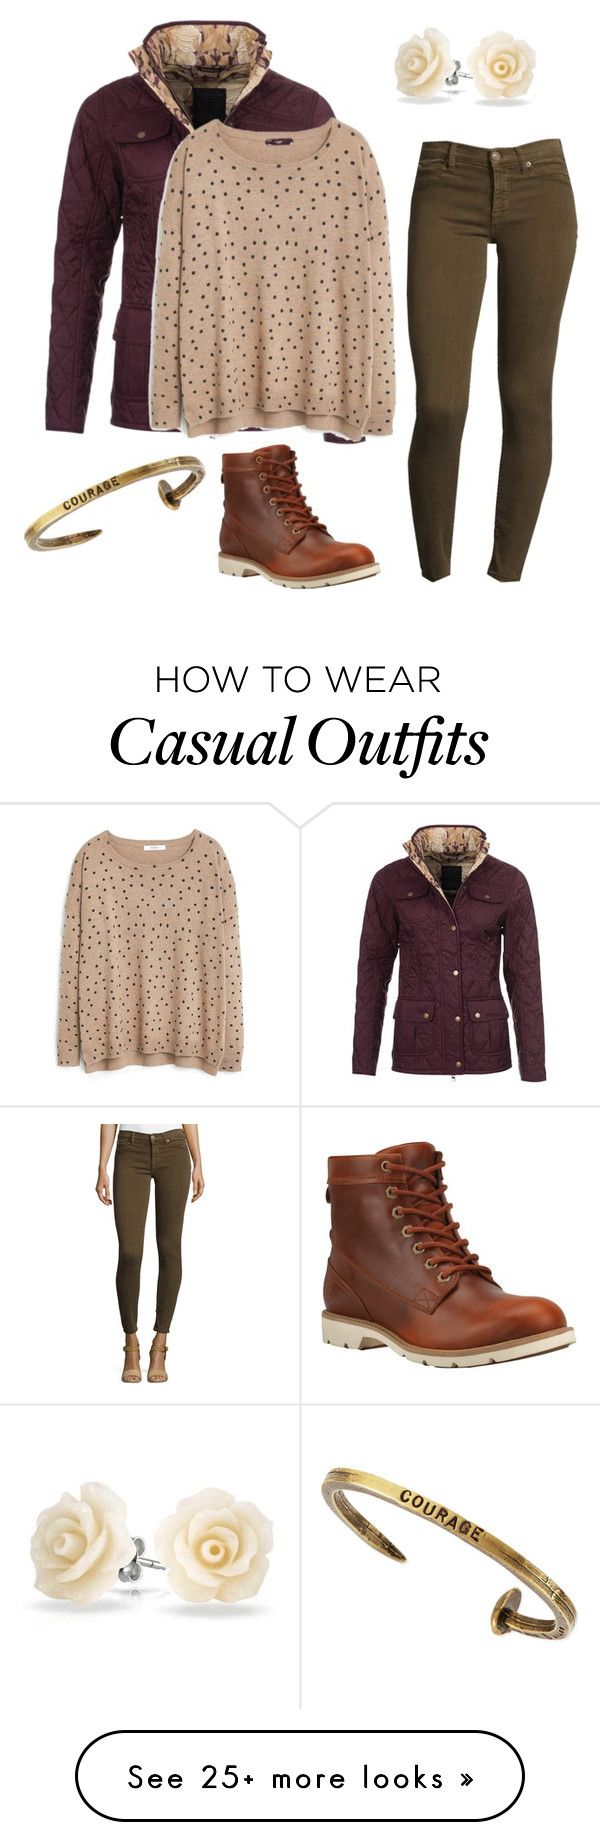 """""""Casual-6"""" by madmaddy33 on Polyvore featuring Barbour, MANGO, Bling Jewelry, Hudson, Timberland and Giles & Brother"""